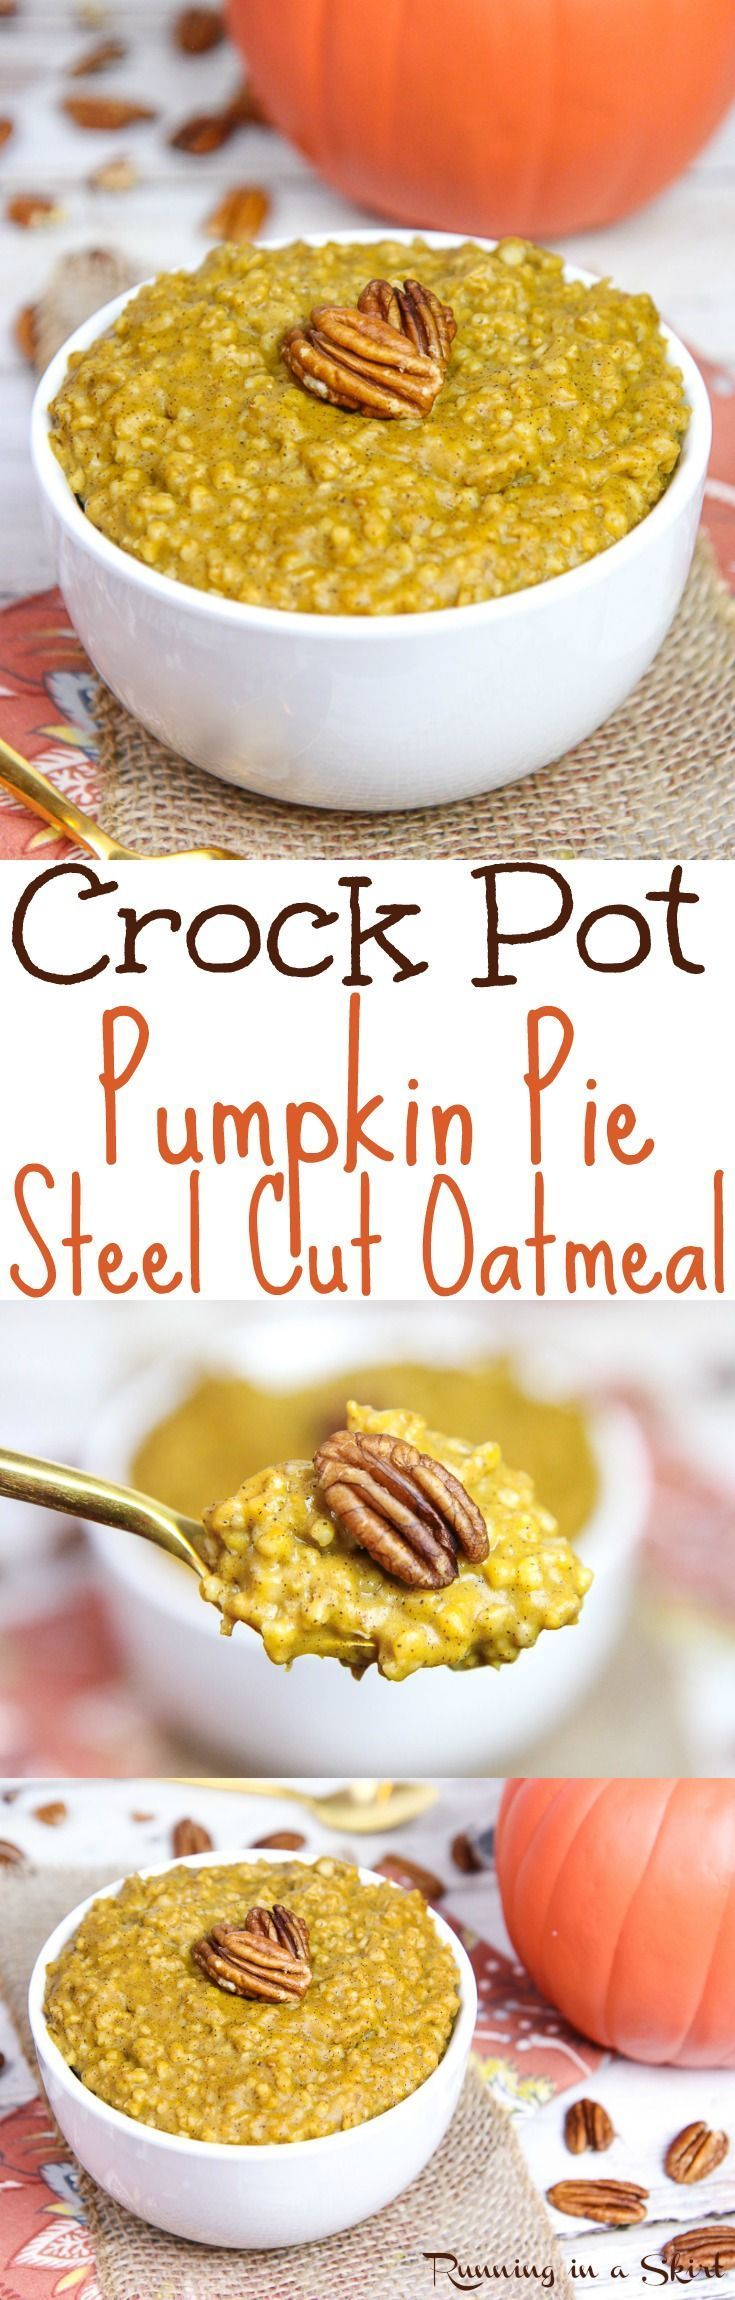 6 Ingredient Crock Pot Pumpkin Pie Steel Cut Oats - the perfect fall oatmeal recipes!  This healthy Pumpkin Steel Cut Oats is a clean eating, vegan and can be cooked overnight.  Uses almond milk, spices and maple syrup. / Running in a Skirt